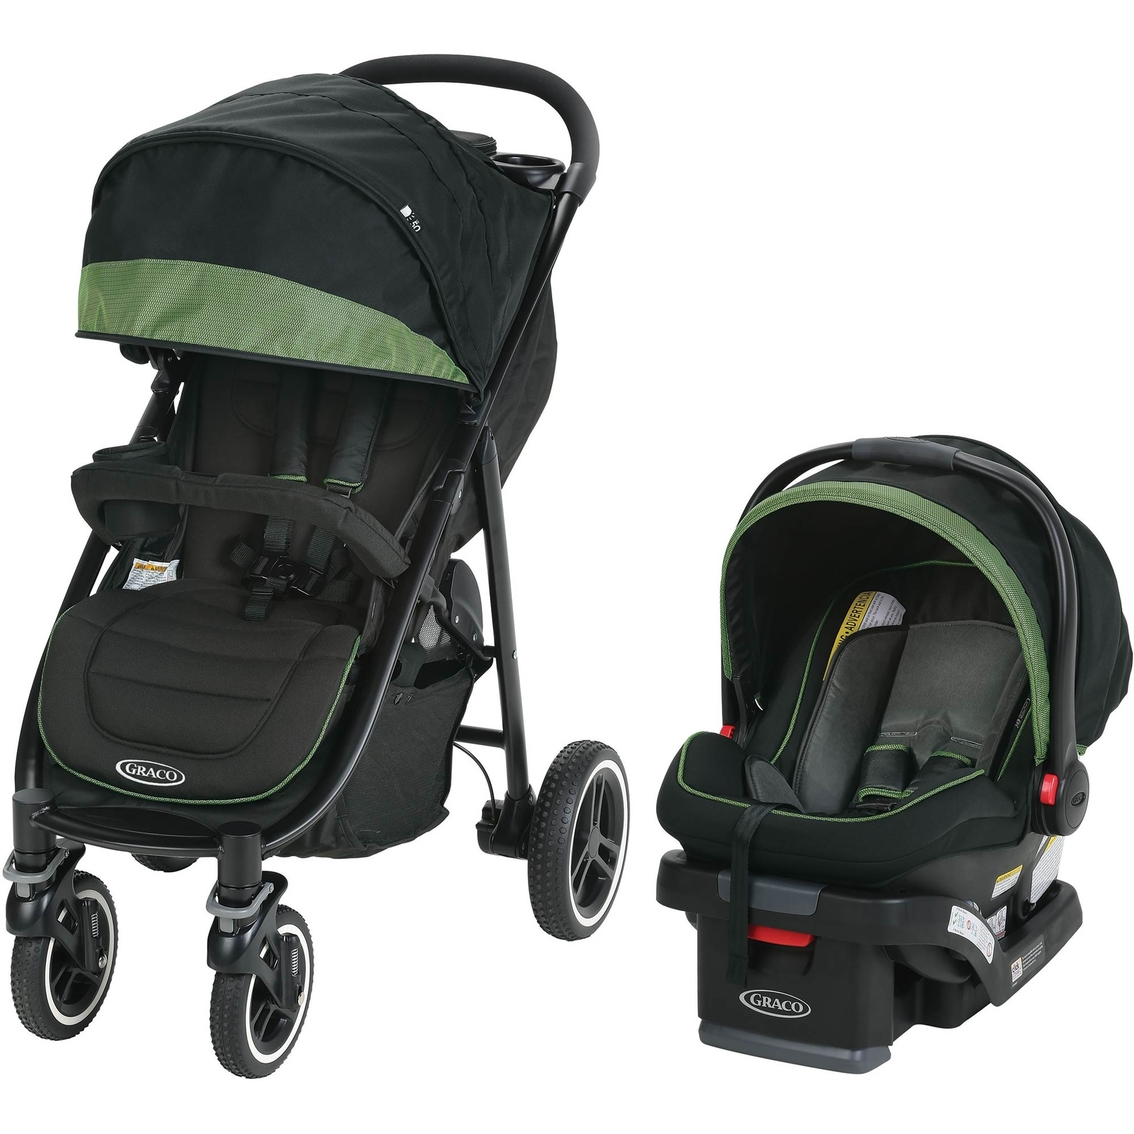 Emory Graco Aire4 XT Click Connect Travel System